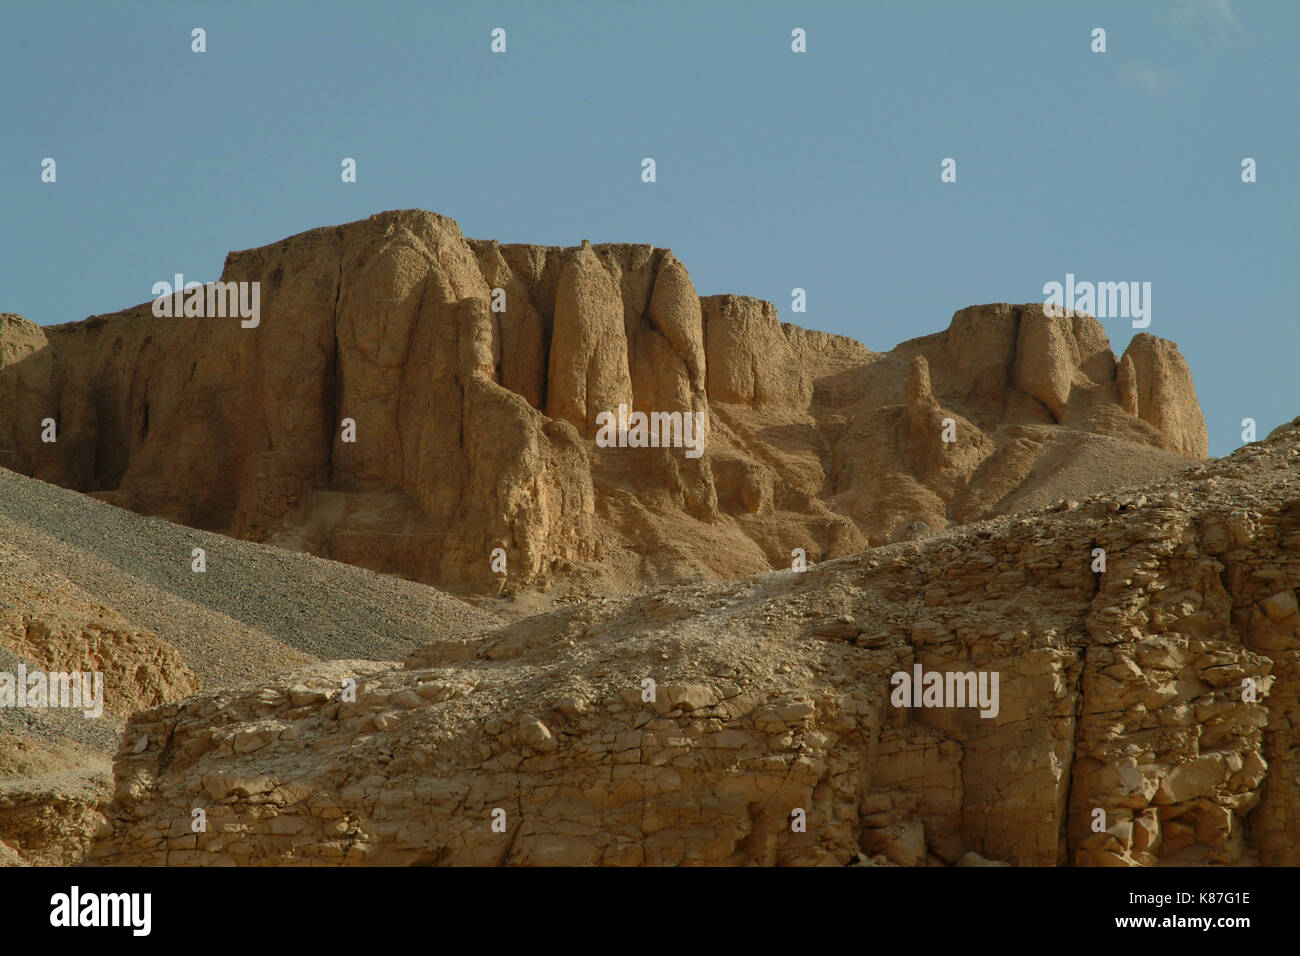 The Tombs in the Valley of the Kings without people, Thebes, Luxor, UNESCO World Heritage Site, Egypt, North Africa, Africa - Stock Image